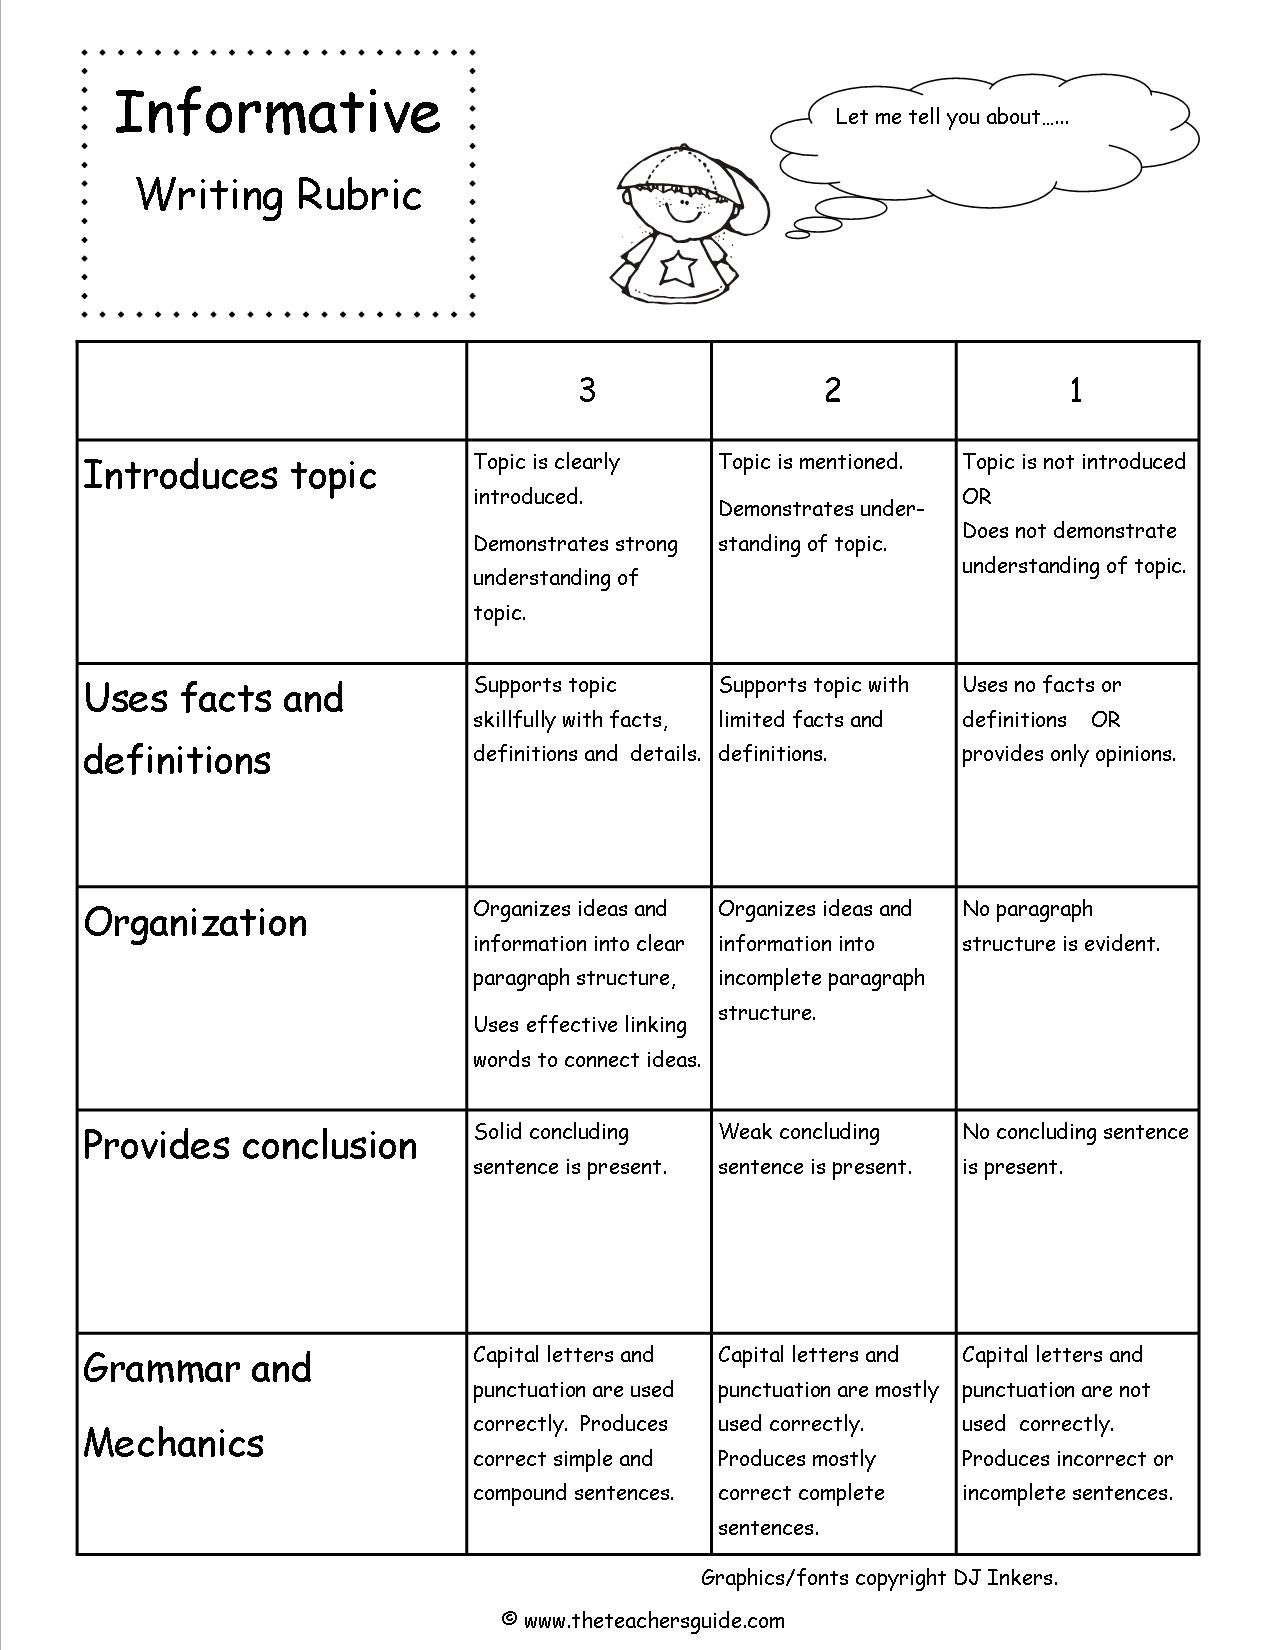 010 Rubrics For Essay Breathtaking Pdf Writing In Social Studies Full